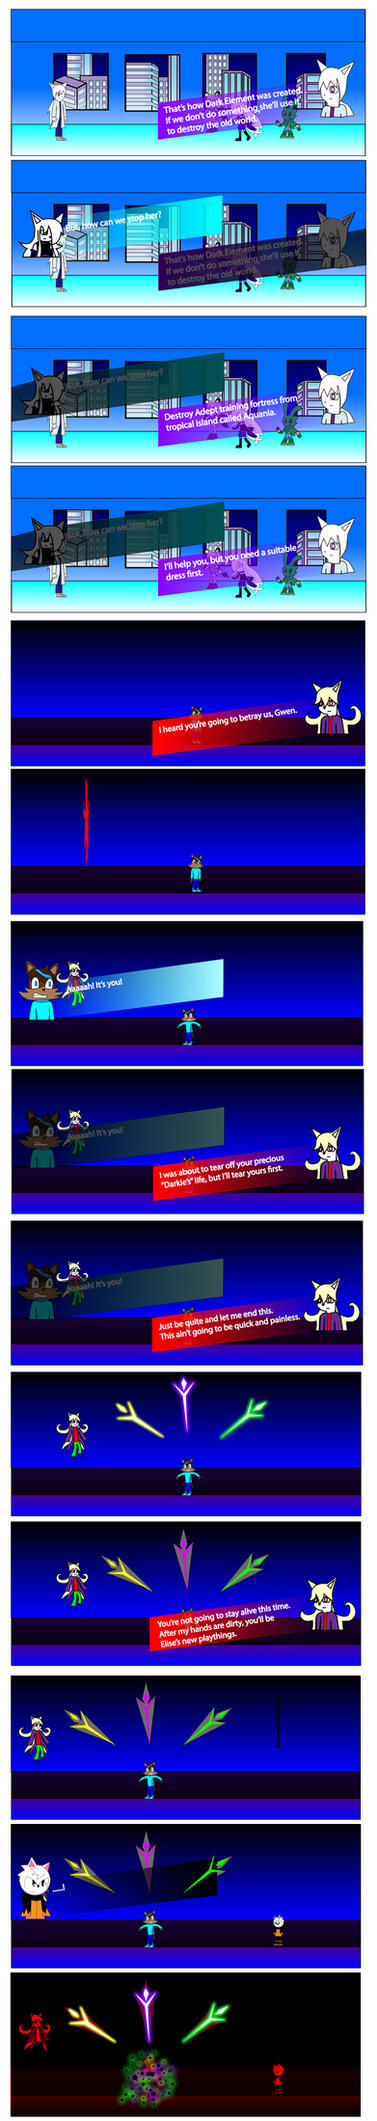 Darkness Impact Chapter 4 part 7 by BioProject04